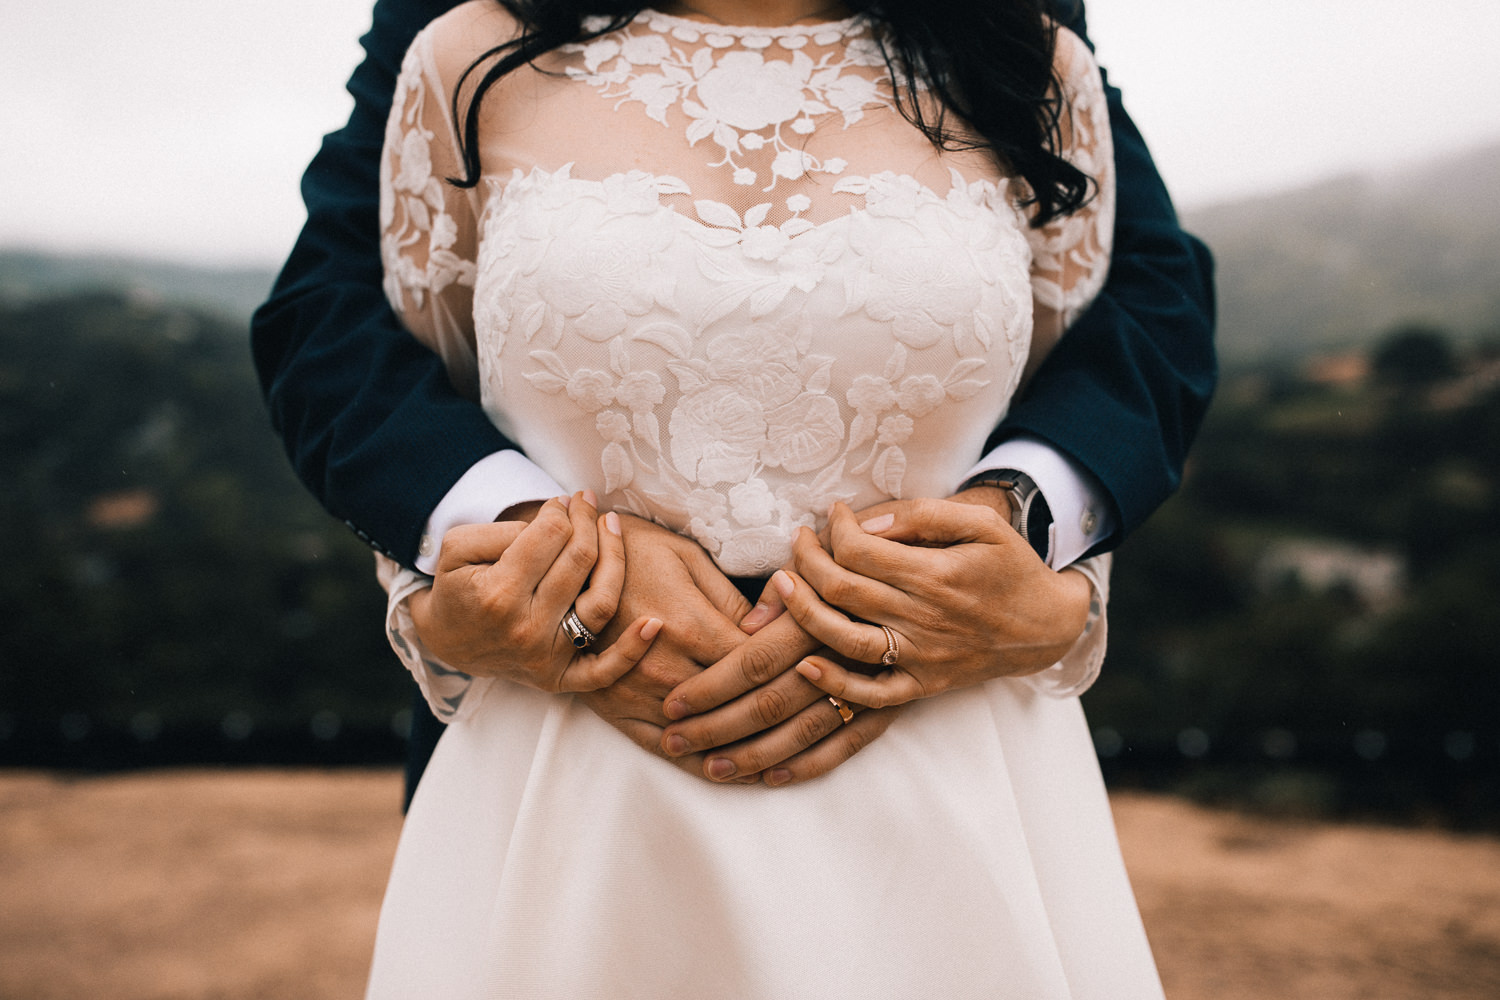 2019_05_ 182019.05.19 Lisa + Eddie South Bay Wedding Blog Photos Edited For Web 0107.jpg